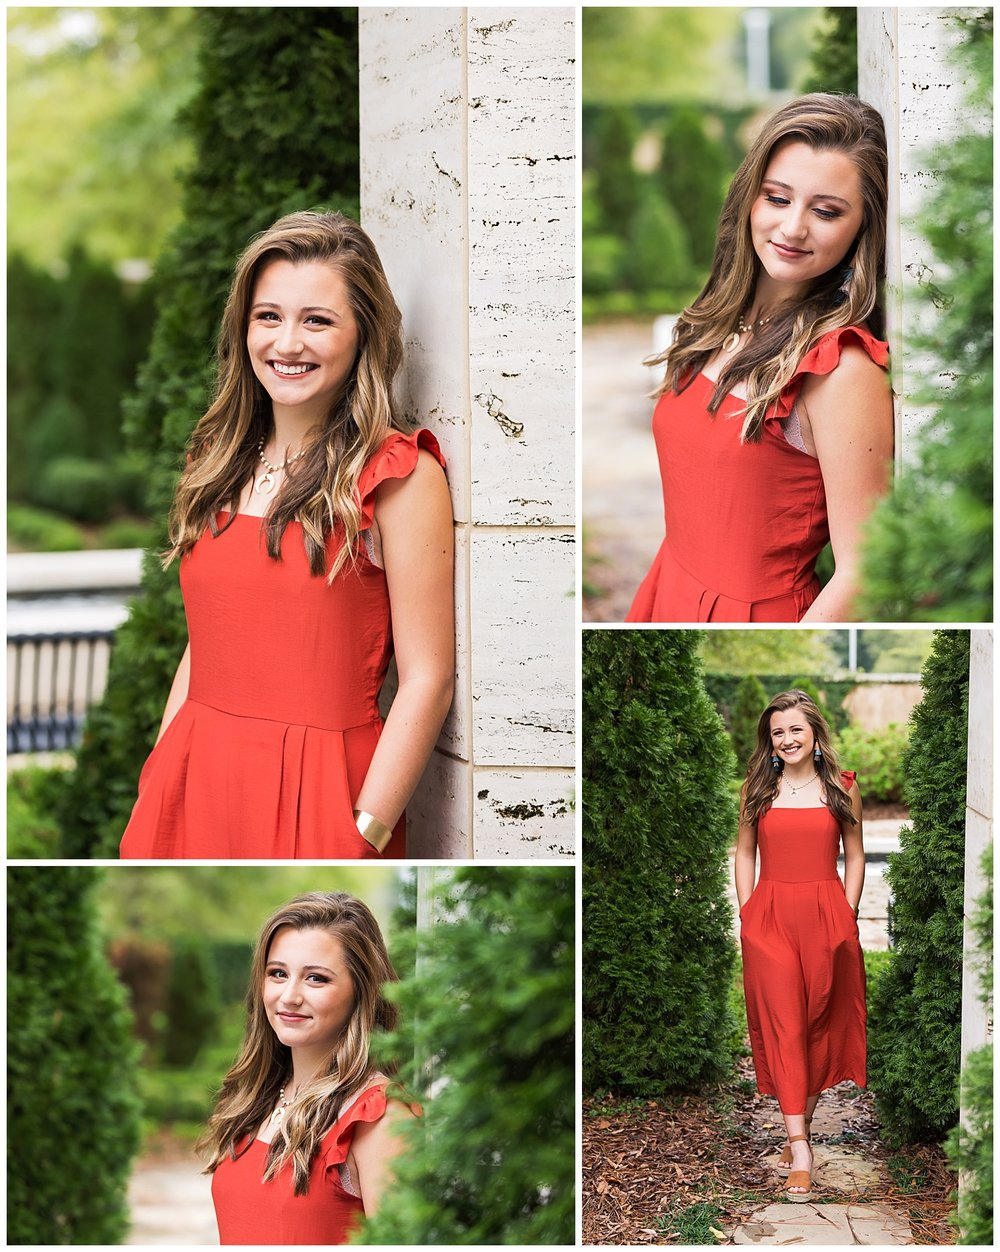 orange jumpsuit senior portraits garden auburn alabama lbeesleyphoto